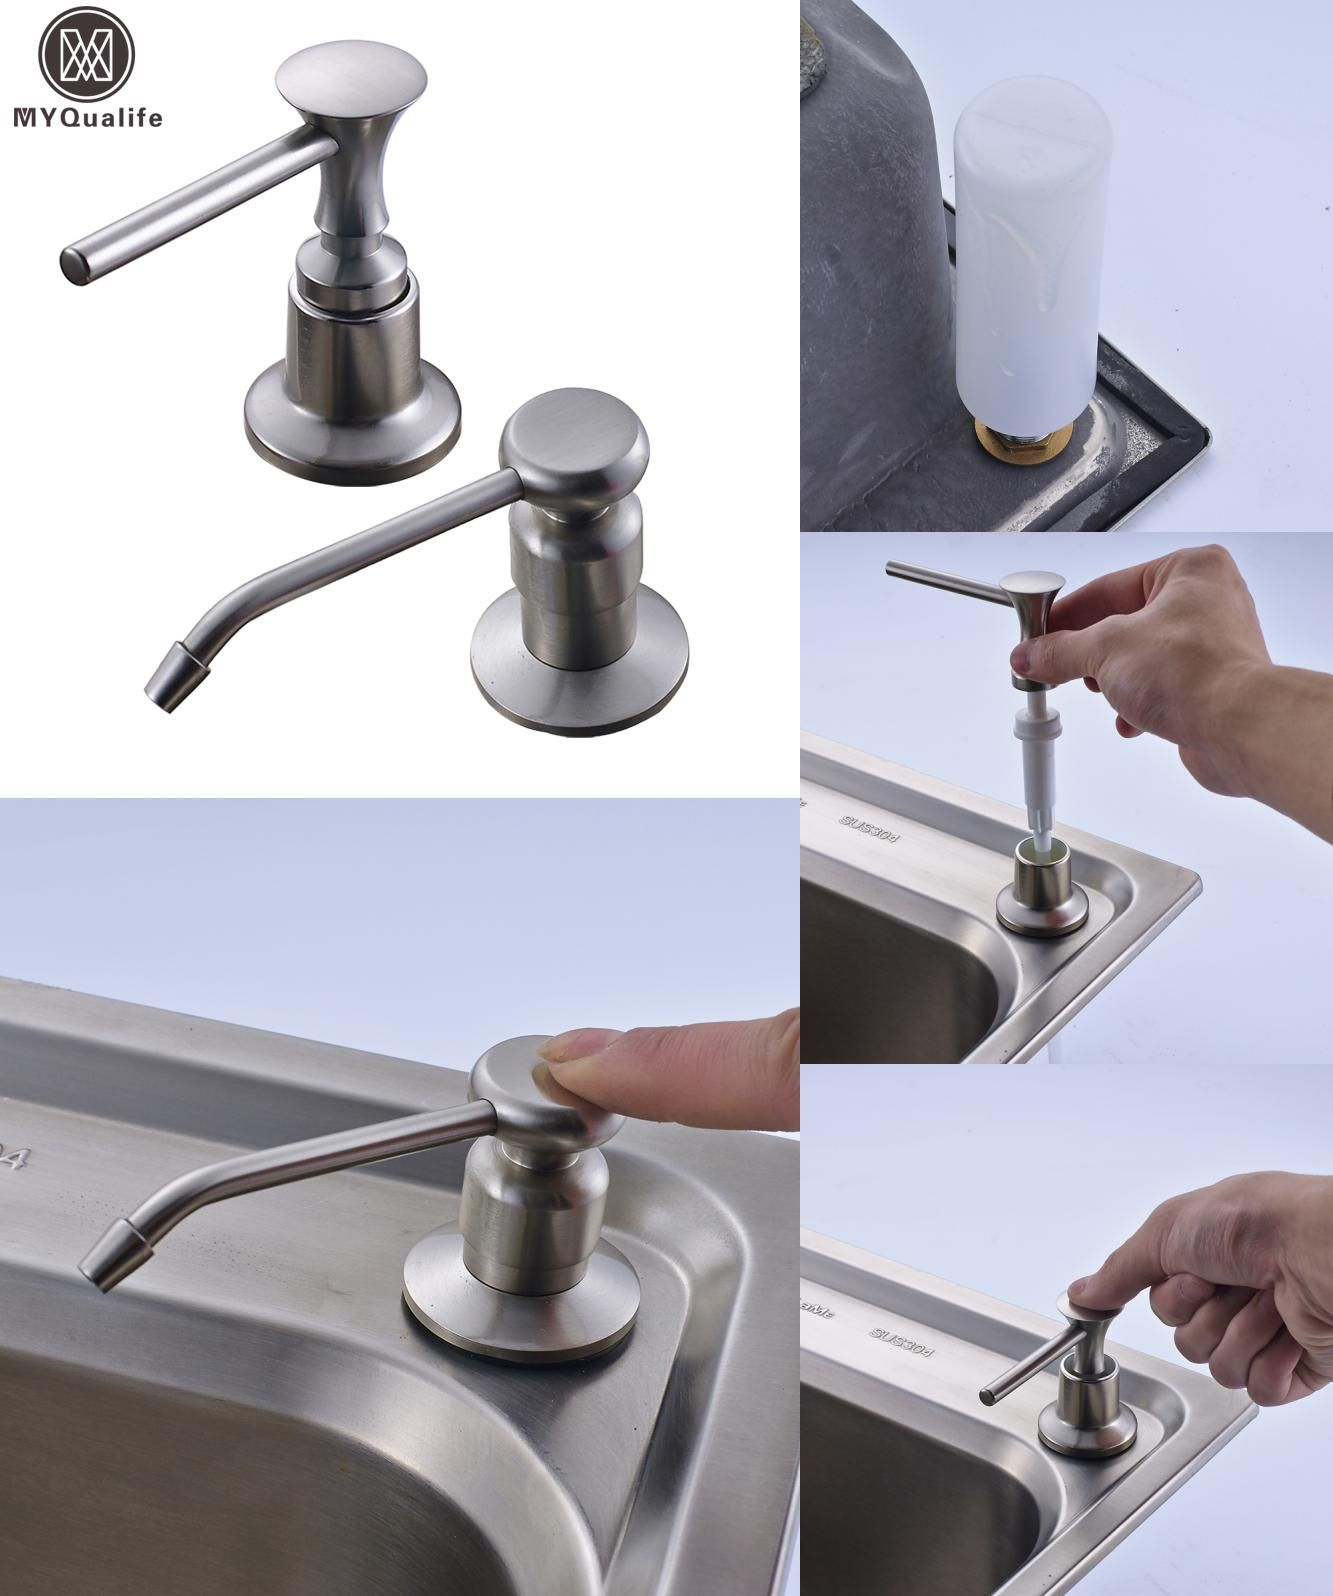 Visit To Buy Brushed Nickel Kitchen Sink Soap Dispenser Stainless Enchanting Kitchen Sink Soap Dispenser Design Decoration